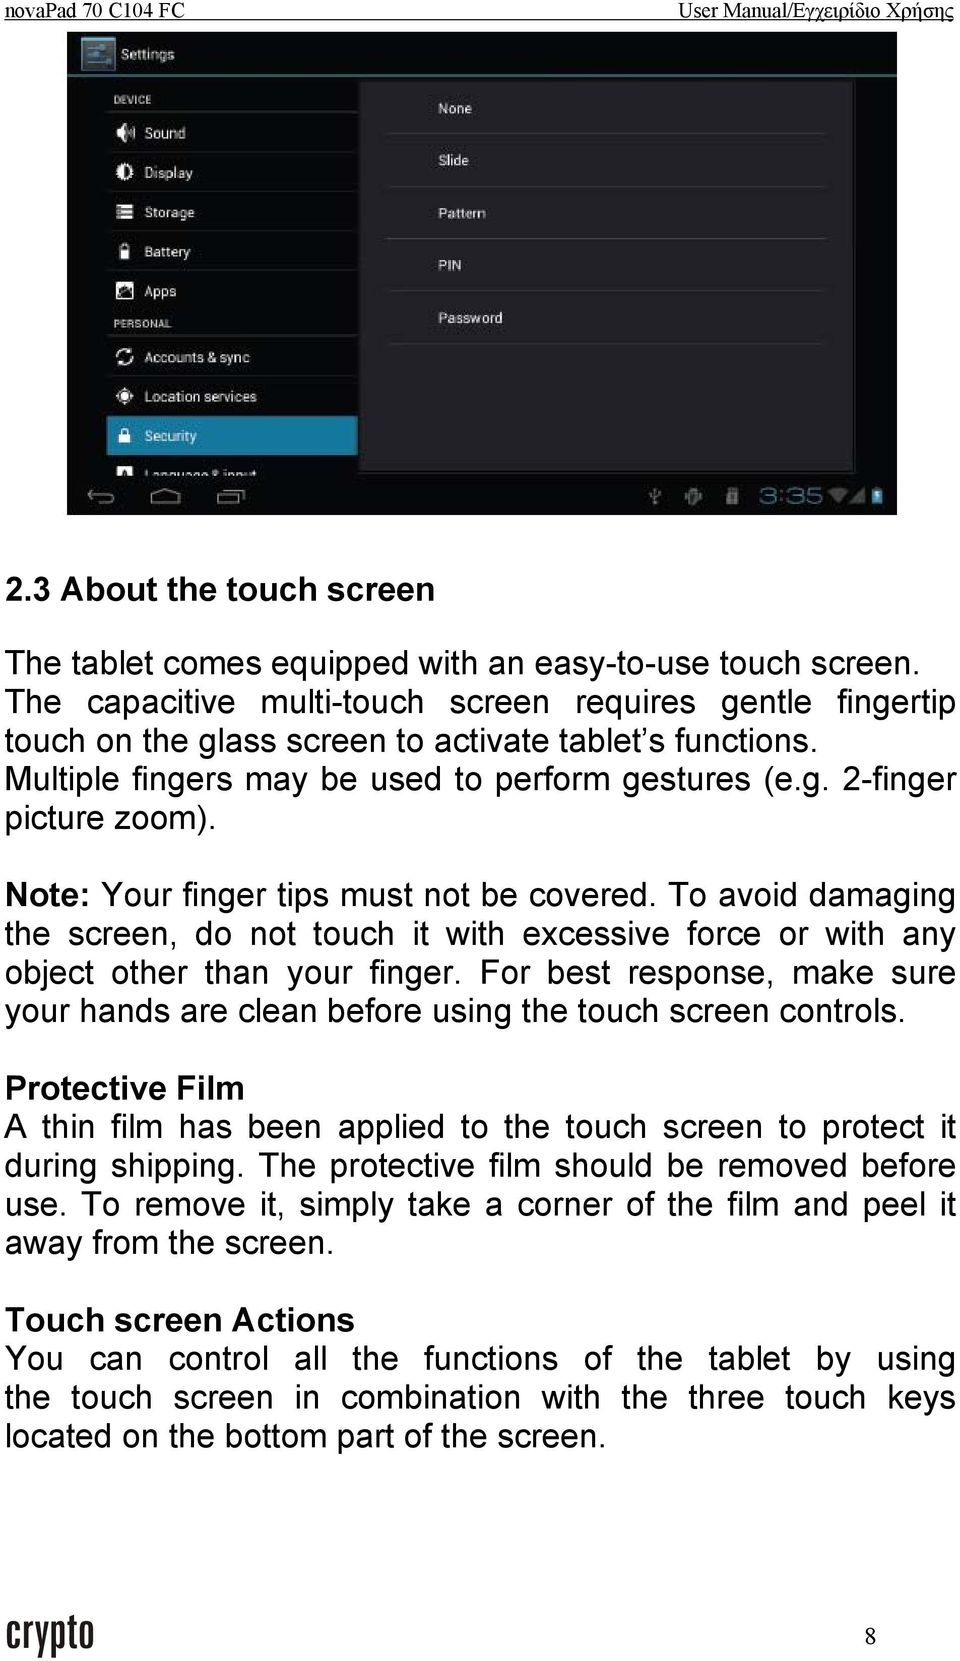 Note: Your finger tips must not be covered. To avoid damaging the screen, do not touch it with excessive force or with any object other than your finger.